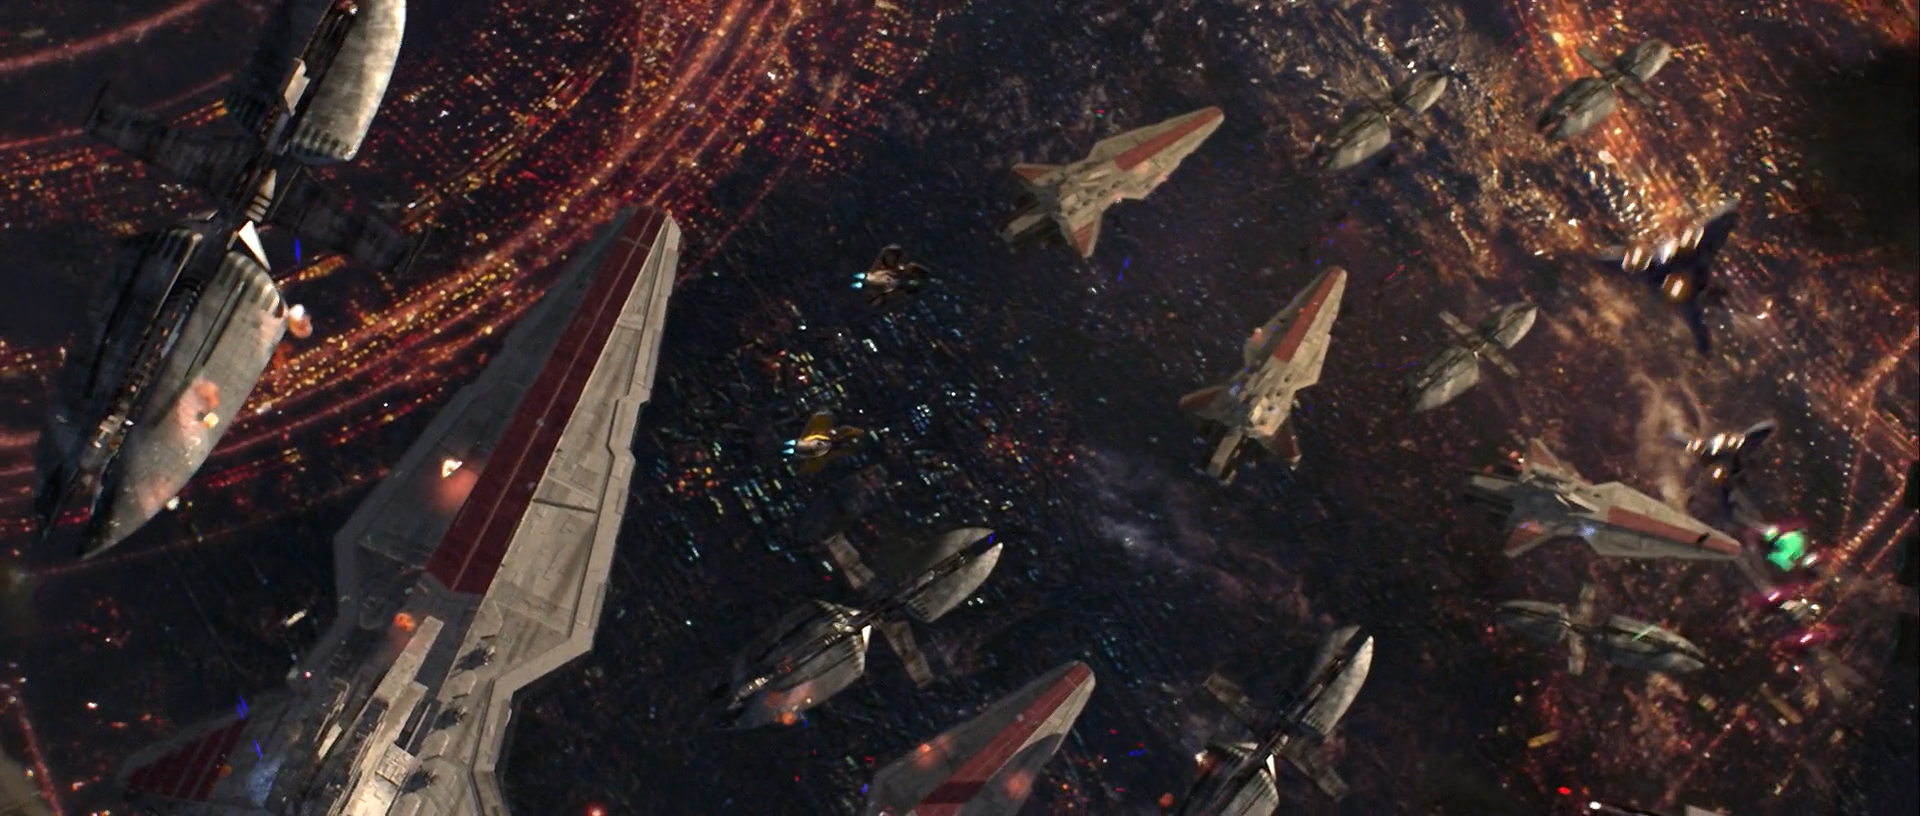 Palpatine Survives the Battle of Coruscant